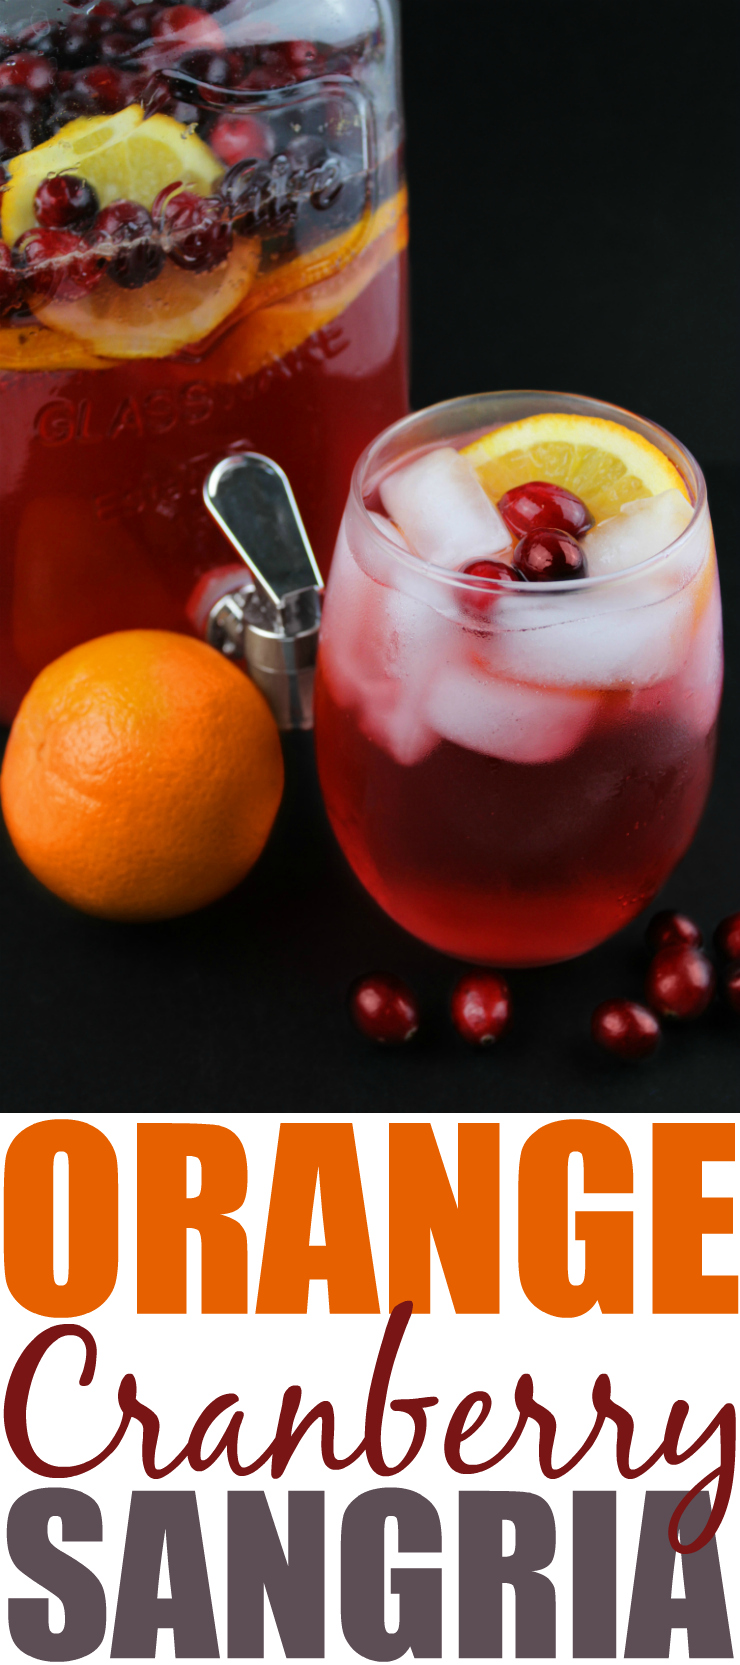 Orange Cranberry Sangria